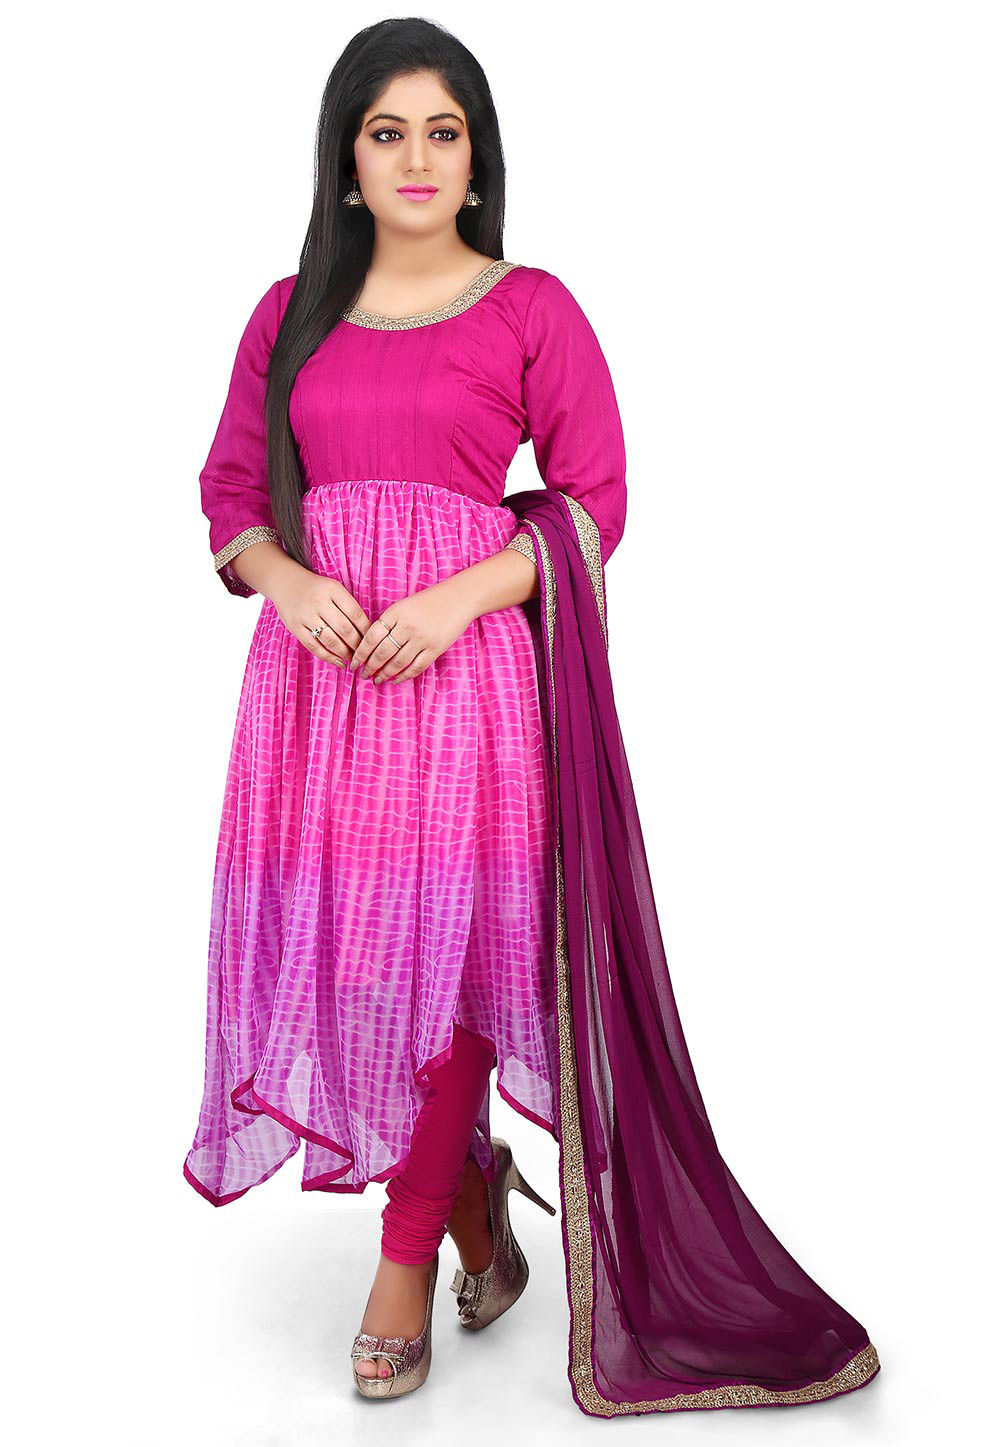 Shibori Dyed Georgette Asymmetric Suit in Fuchsia